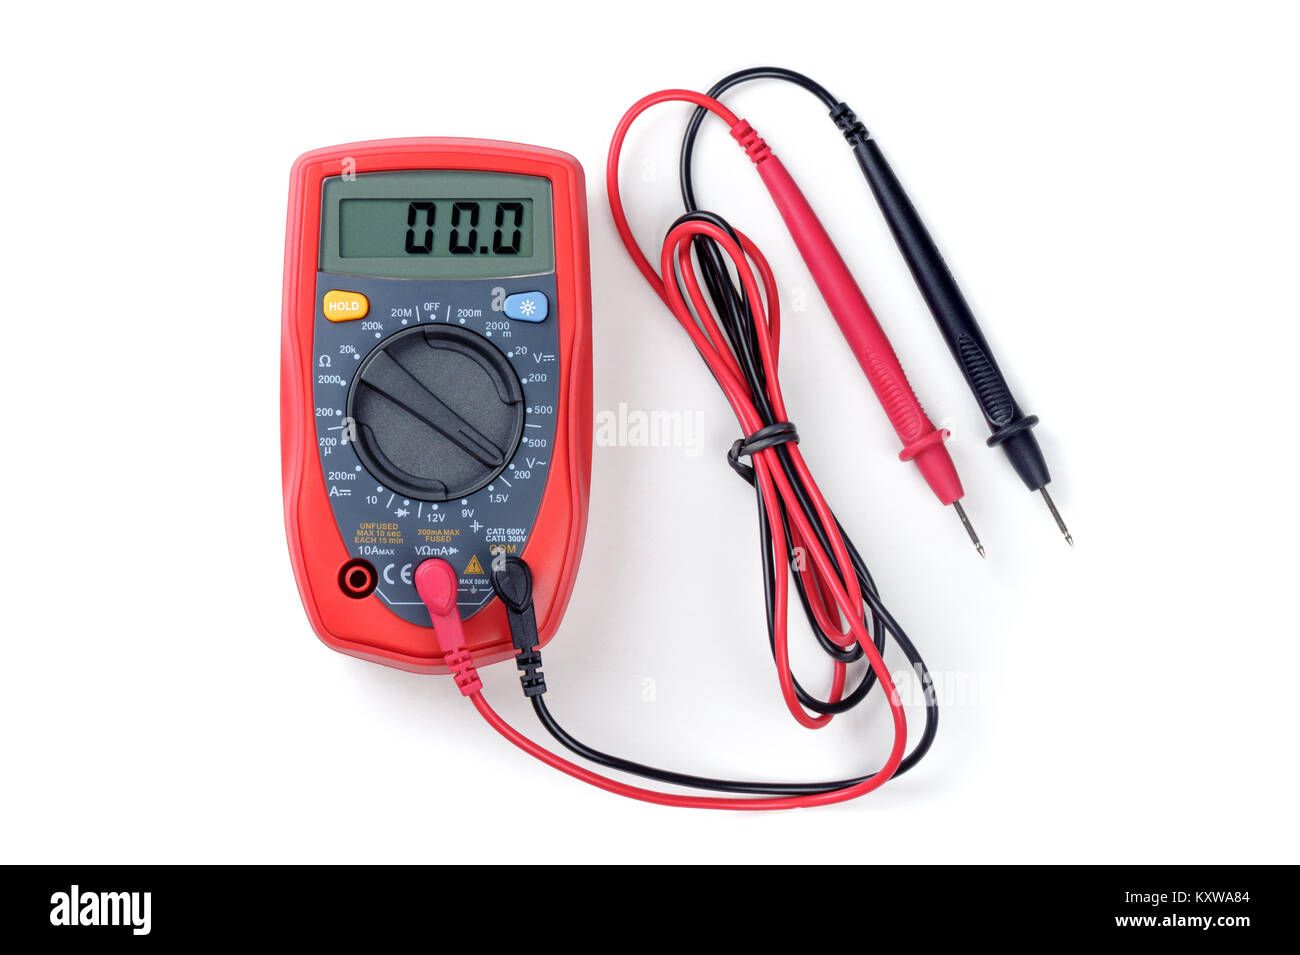 digital multimeter or multitester or Volt-Ohm meter, an electronic ...